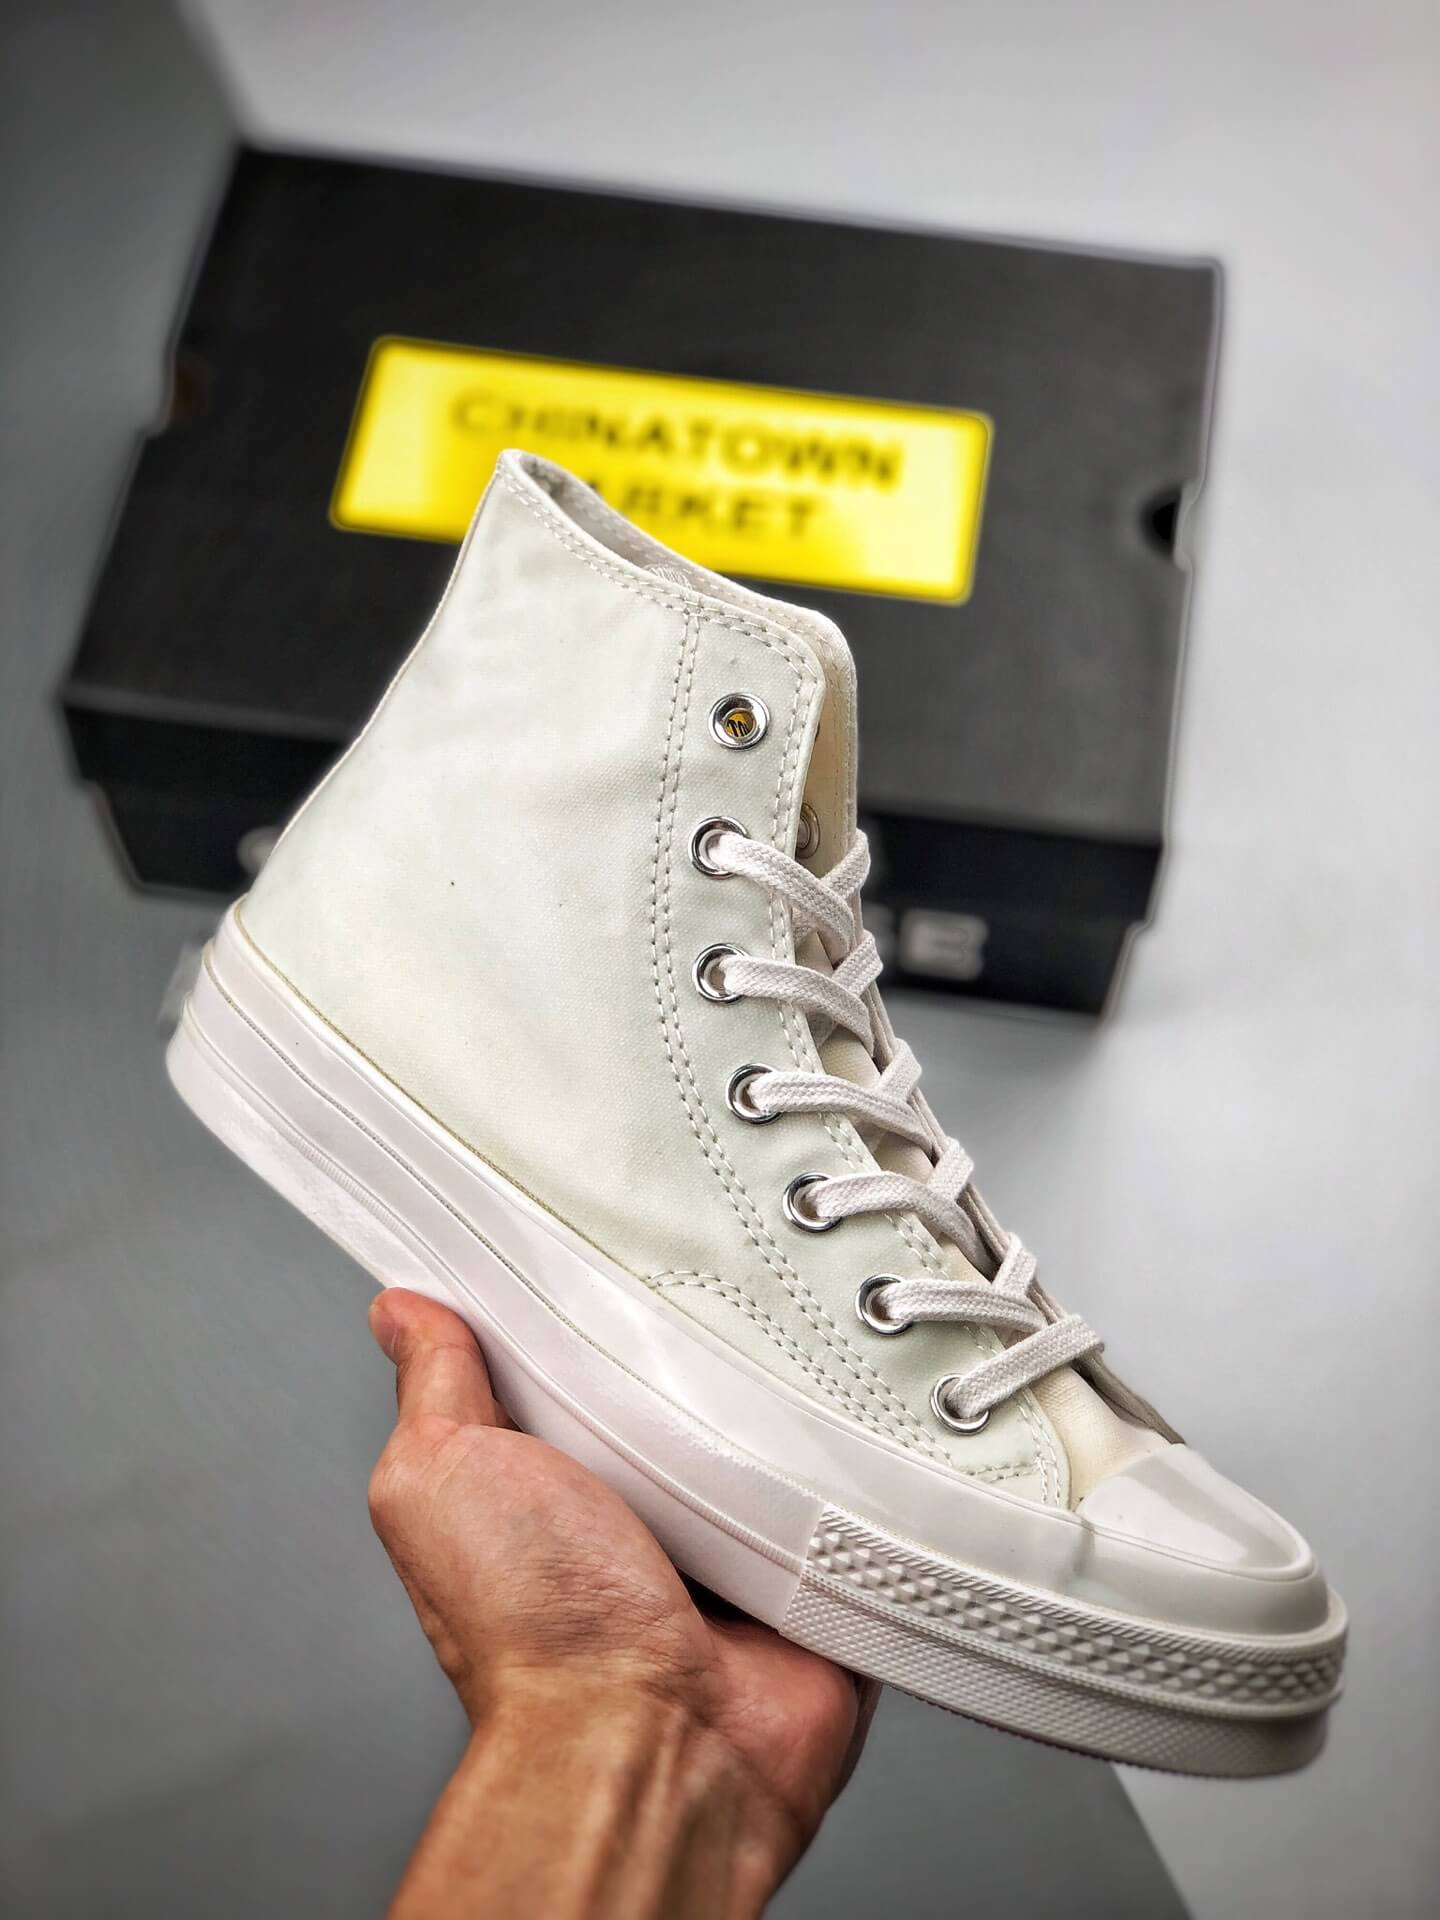 The Converse Chinatown Market x Chuck 70 High UV Lifestyle RepShoes 01